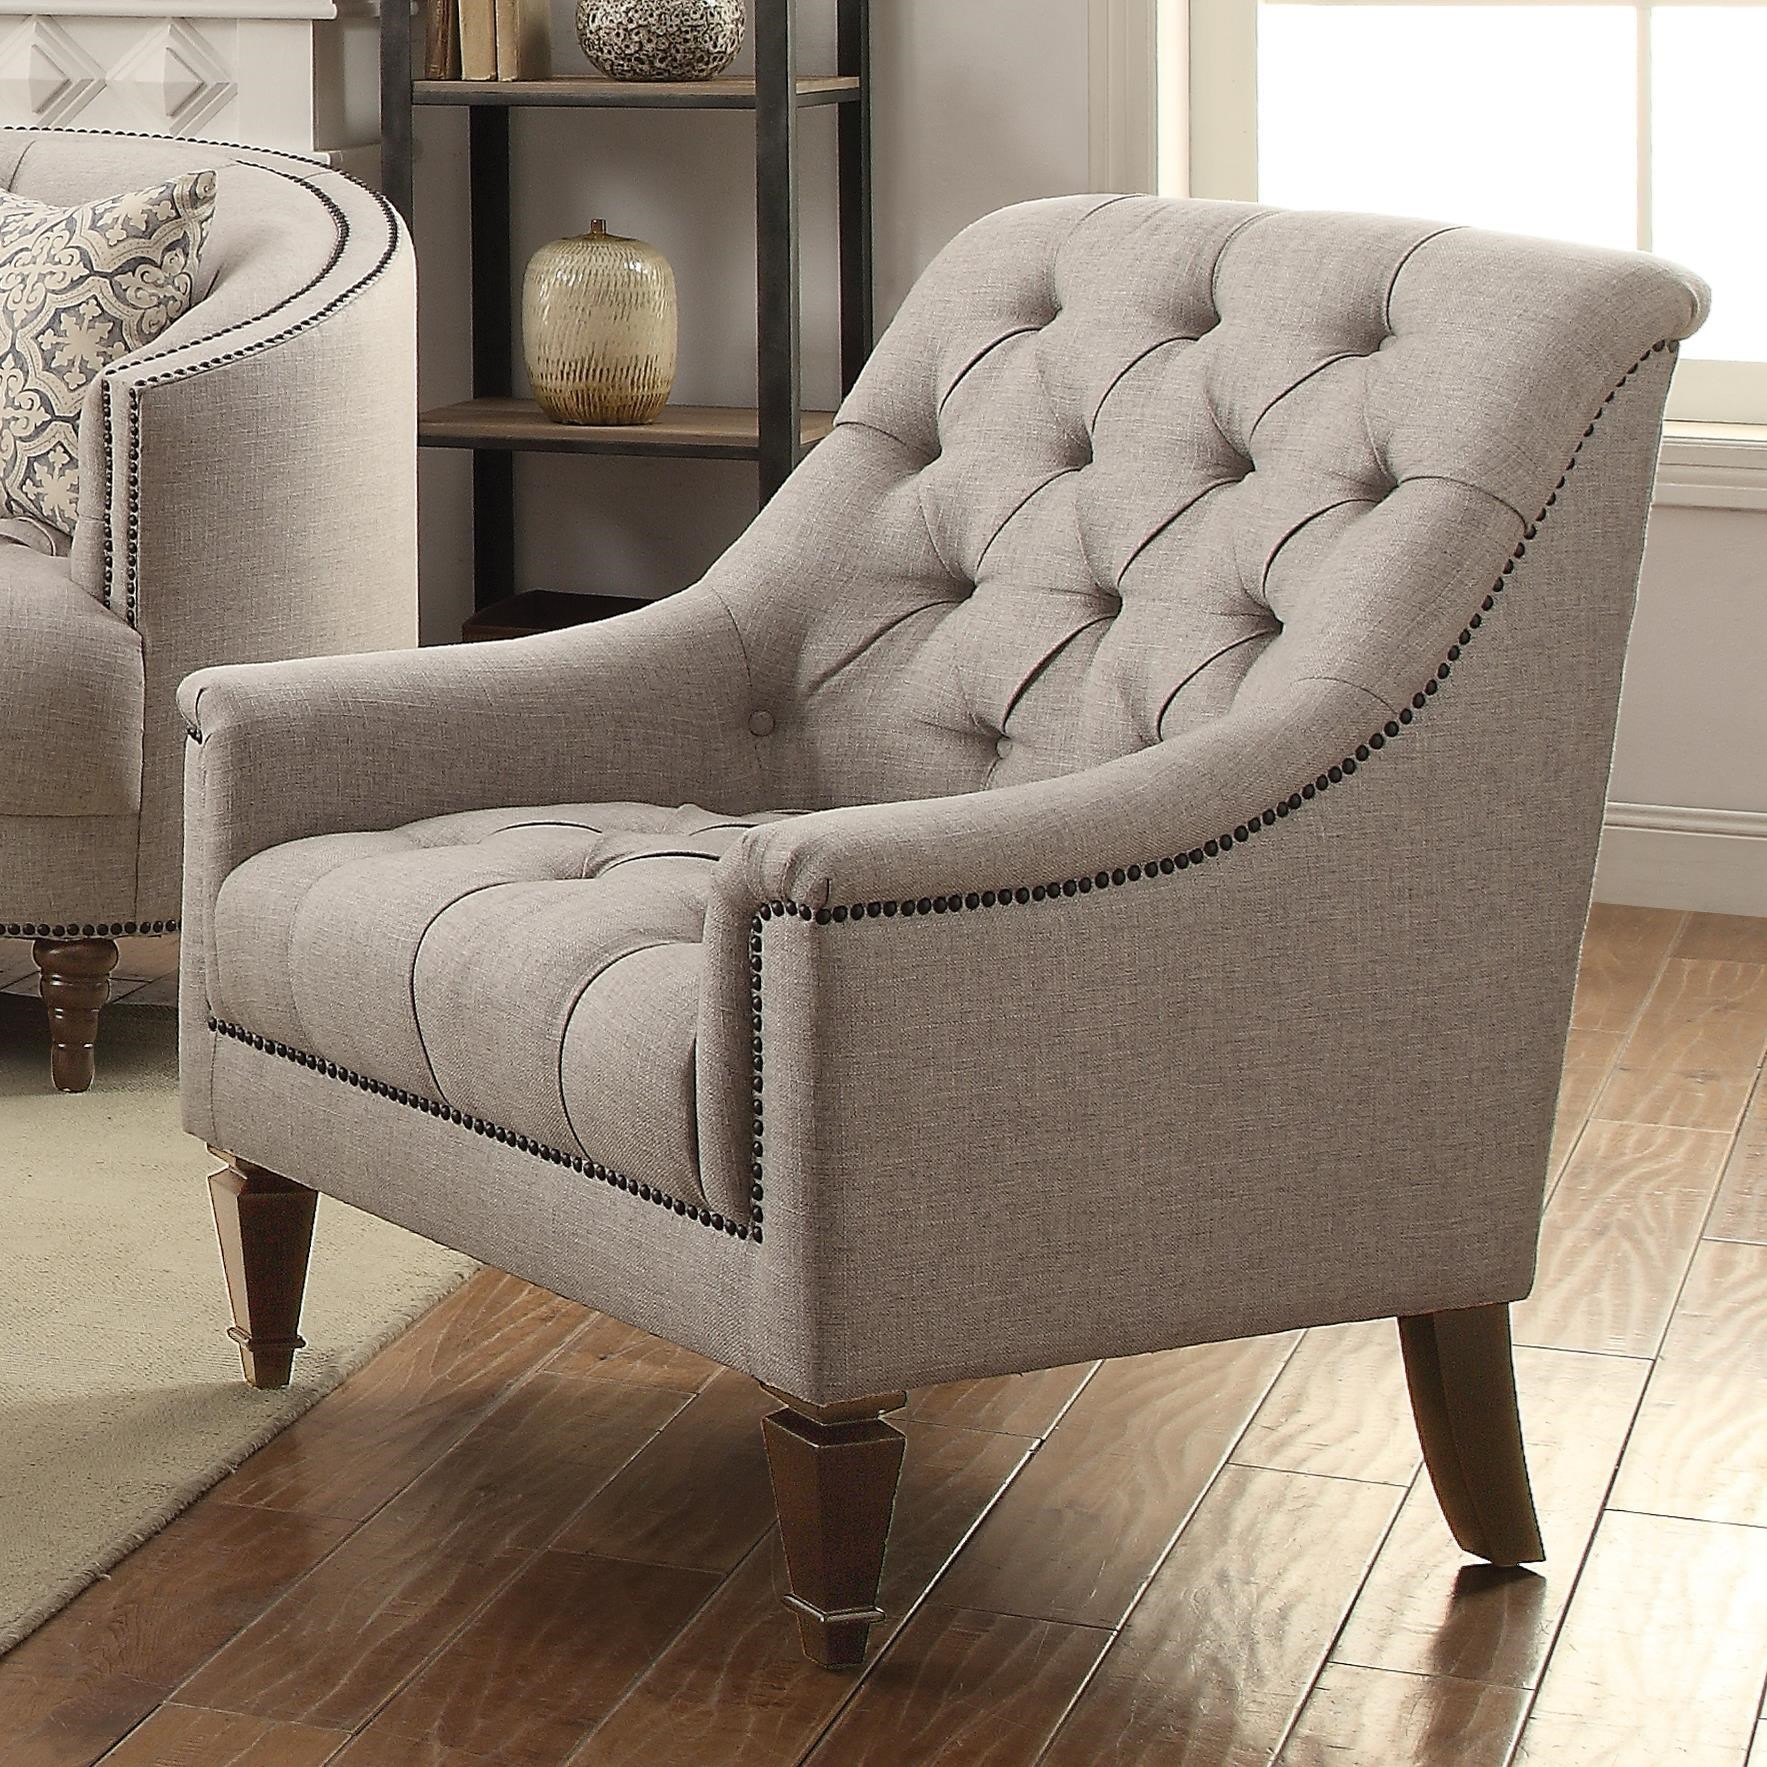 Coaster Avonlea 505643 Upholstered Chair With Heavy Tufting Dunk Bright Furniture